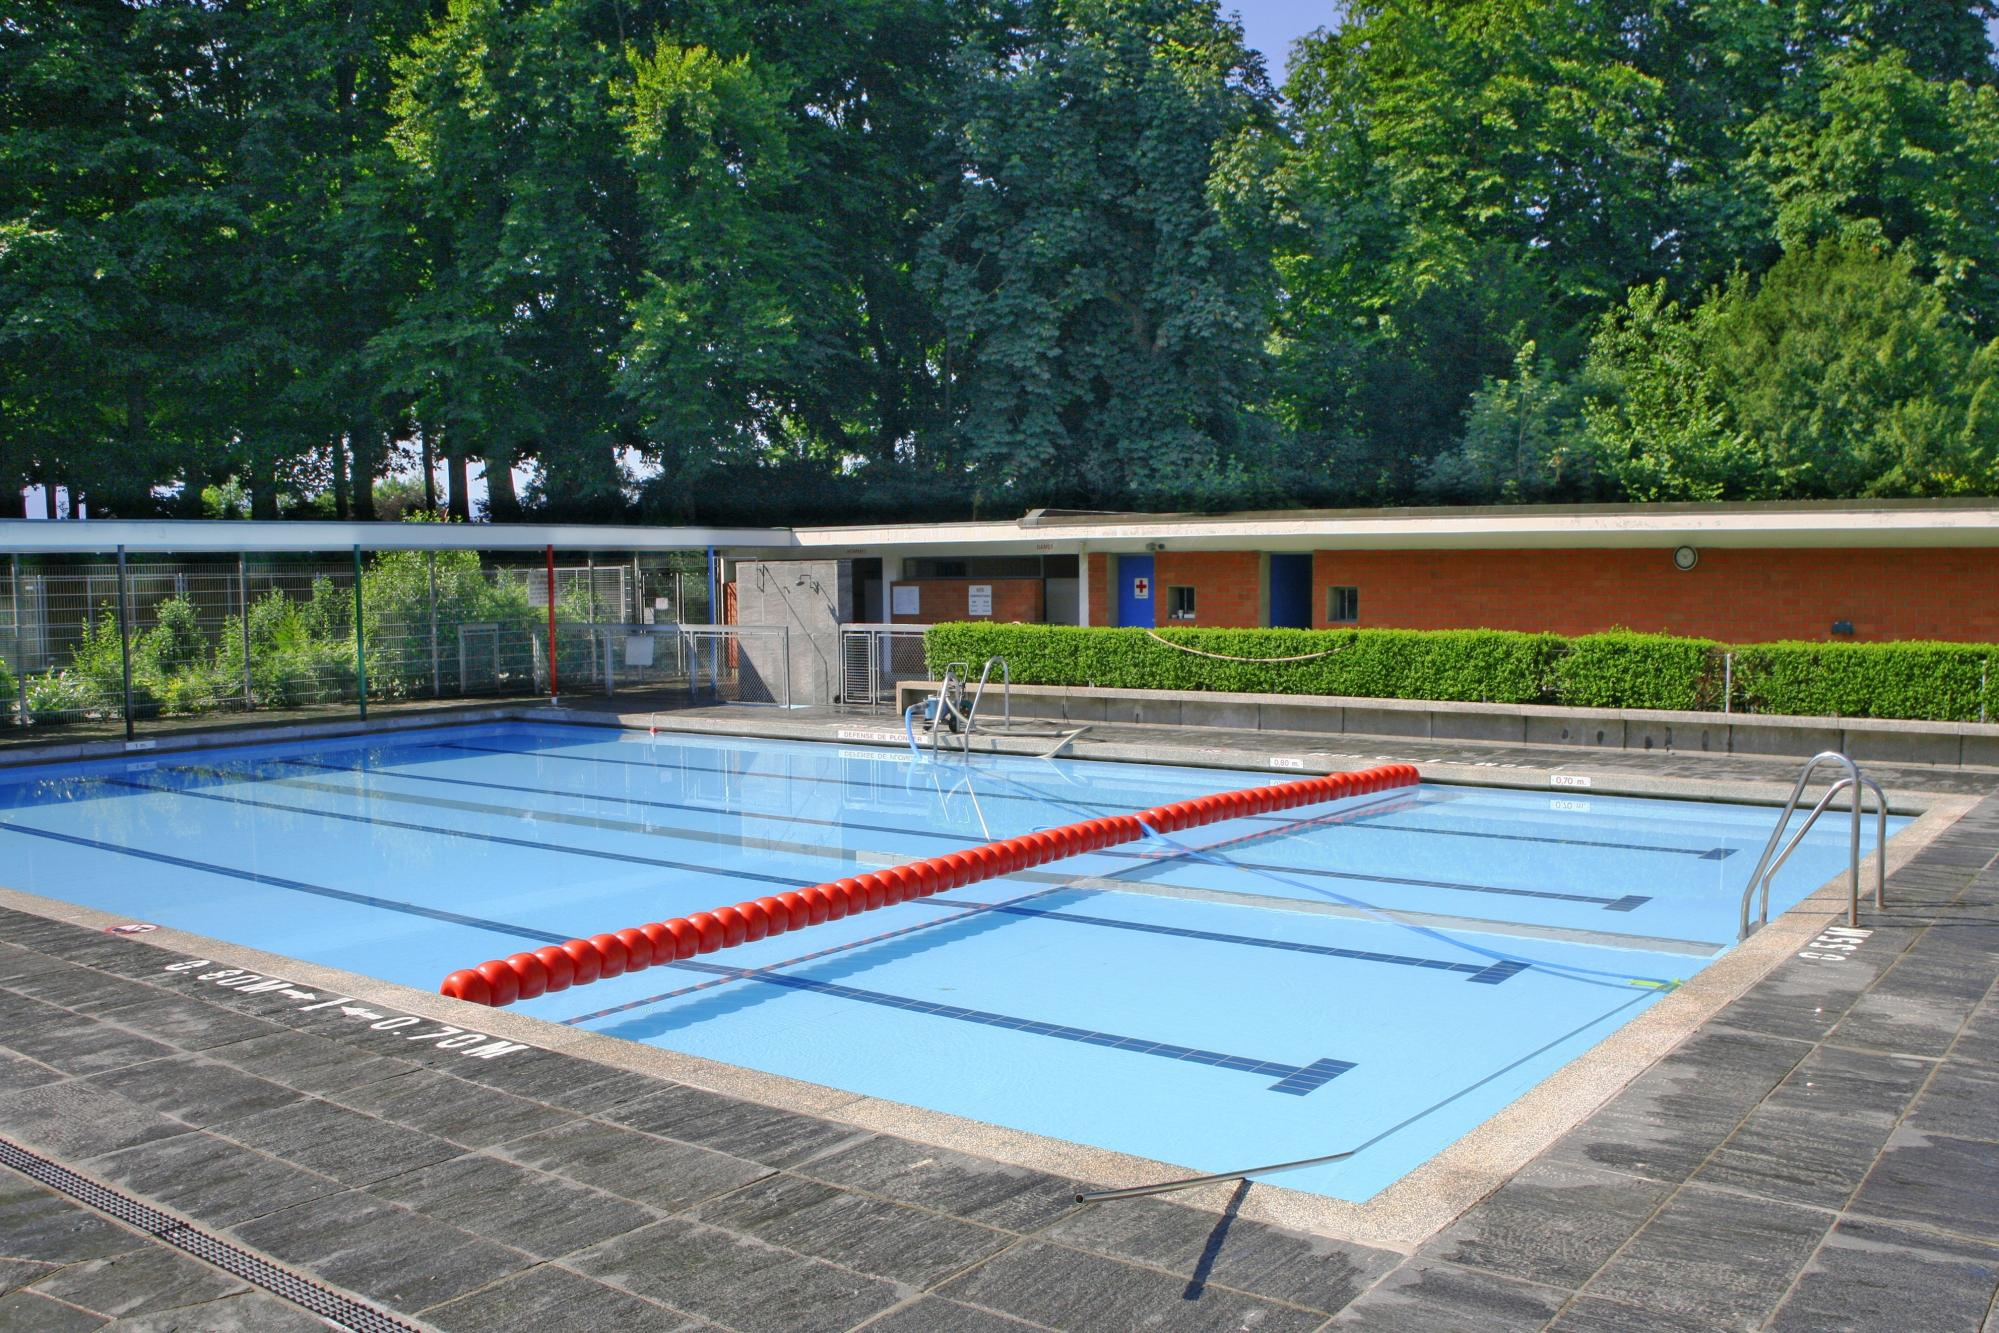 Montétan swimming pool